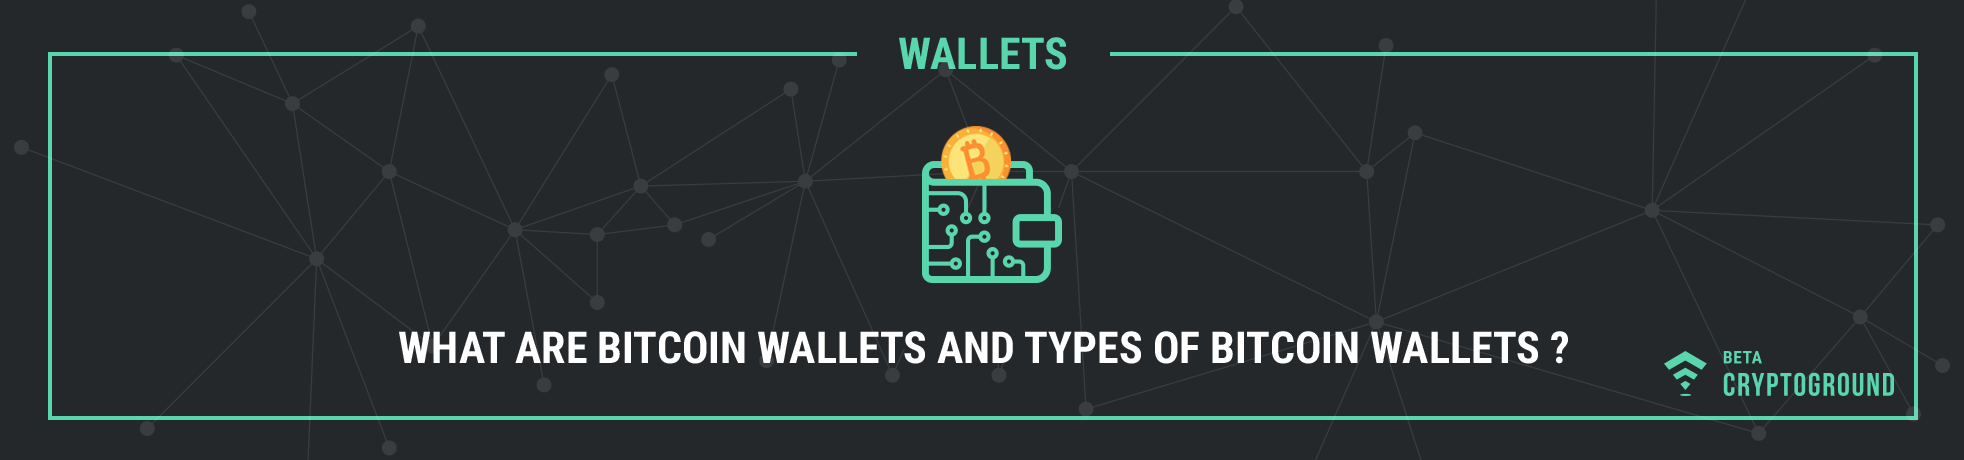 What Are Bitcoin Wallets and Types of Bitcoin Wallets ?